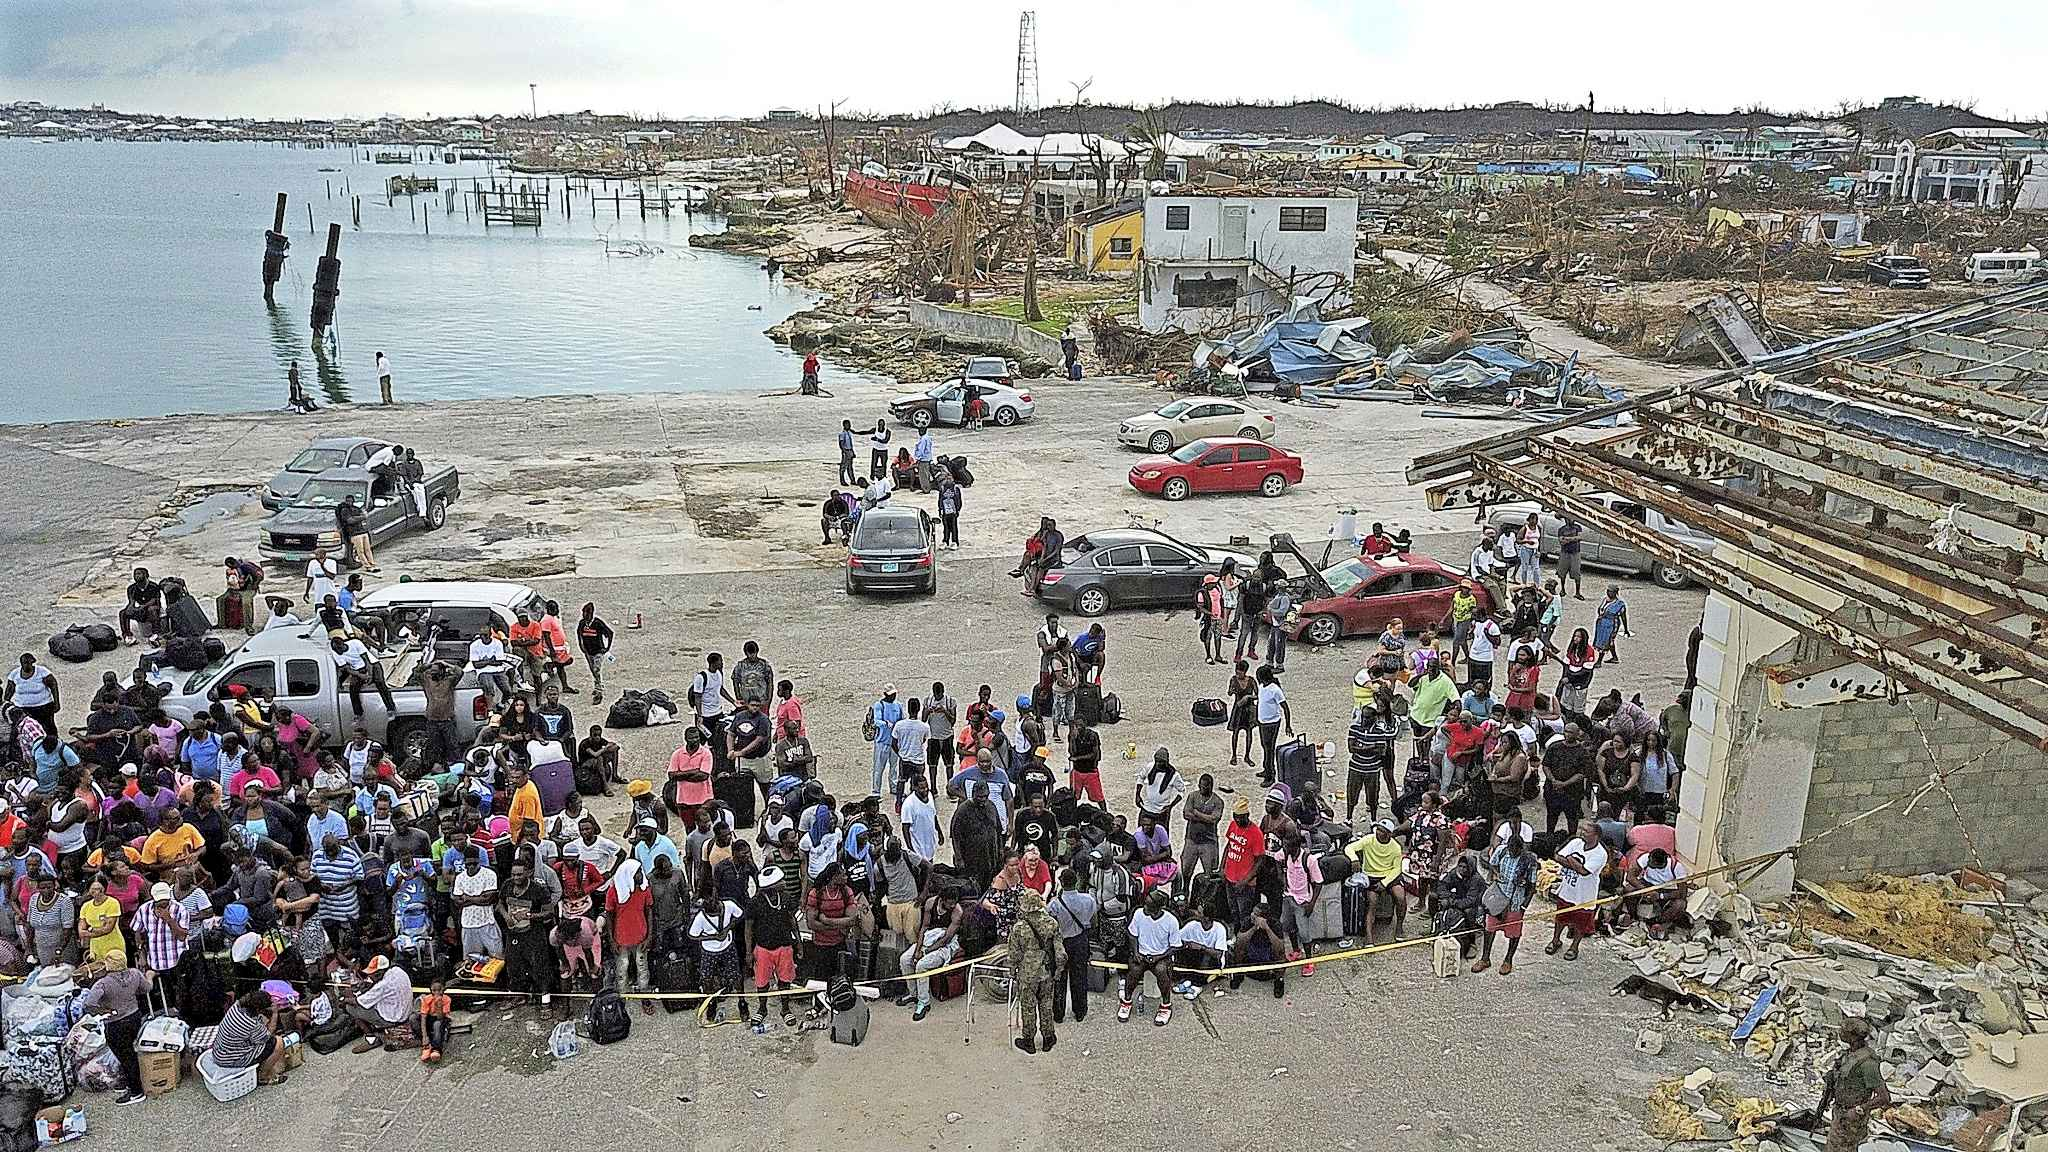 Evacuees gather at Marsh Harbour Port in Abaco, Bahamas, Friday, Sept. 6, 2019. Carrying their meager possessions in duffel bags and shopping carts, hundreds of desperate storm victims gathered at the port in Grand Abaco on Friday in hopes of getting off the hurricane-devastated island, amid signs of rising frustration over the pace of the disaster-relief effort. (Al Diaz/Miami Herald via AP)